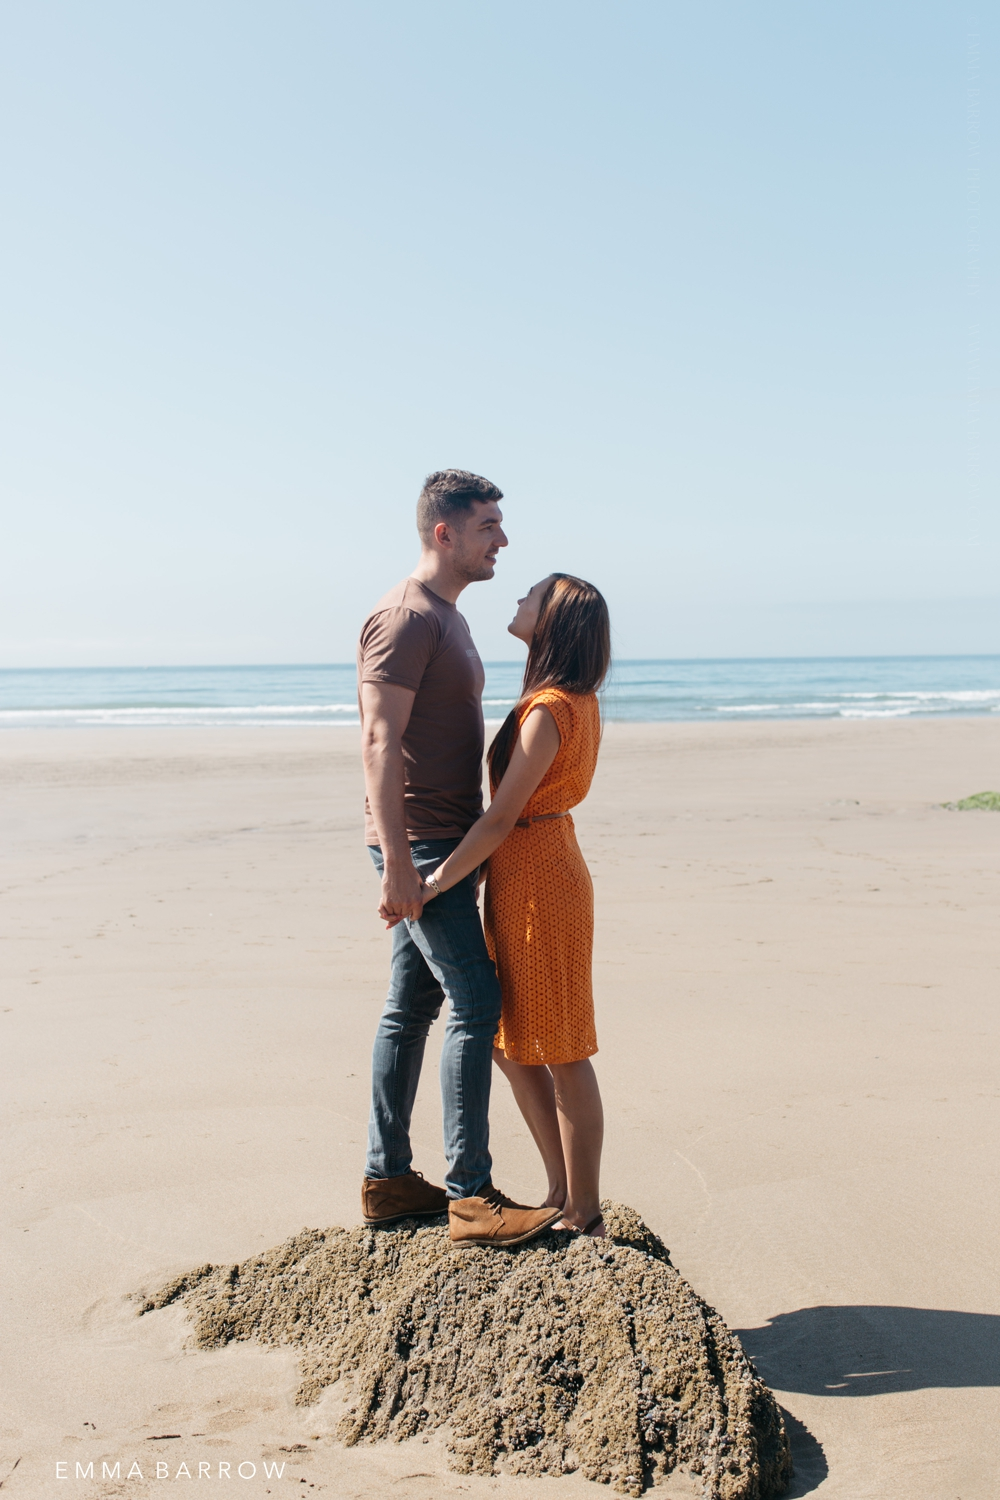 emmabarrow_lucywillPREWED-64.jpg